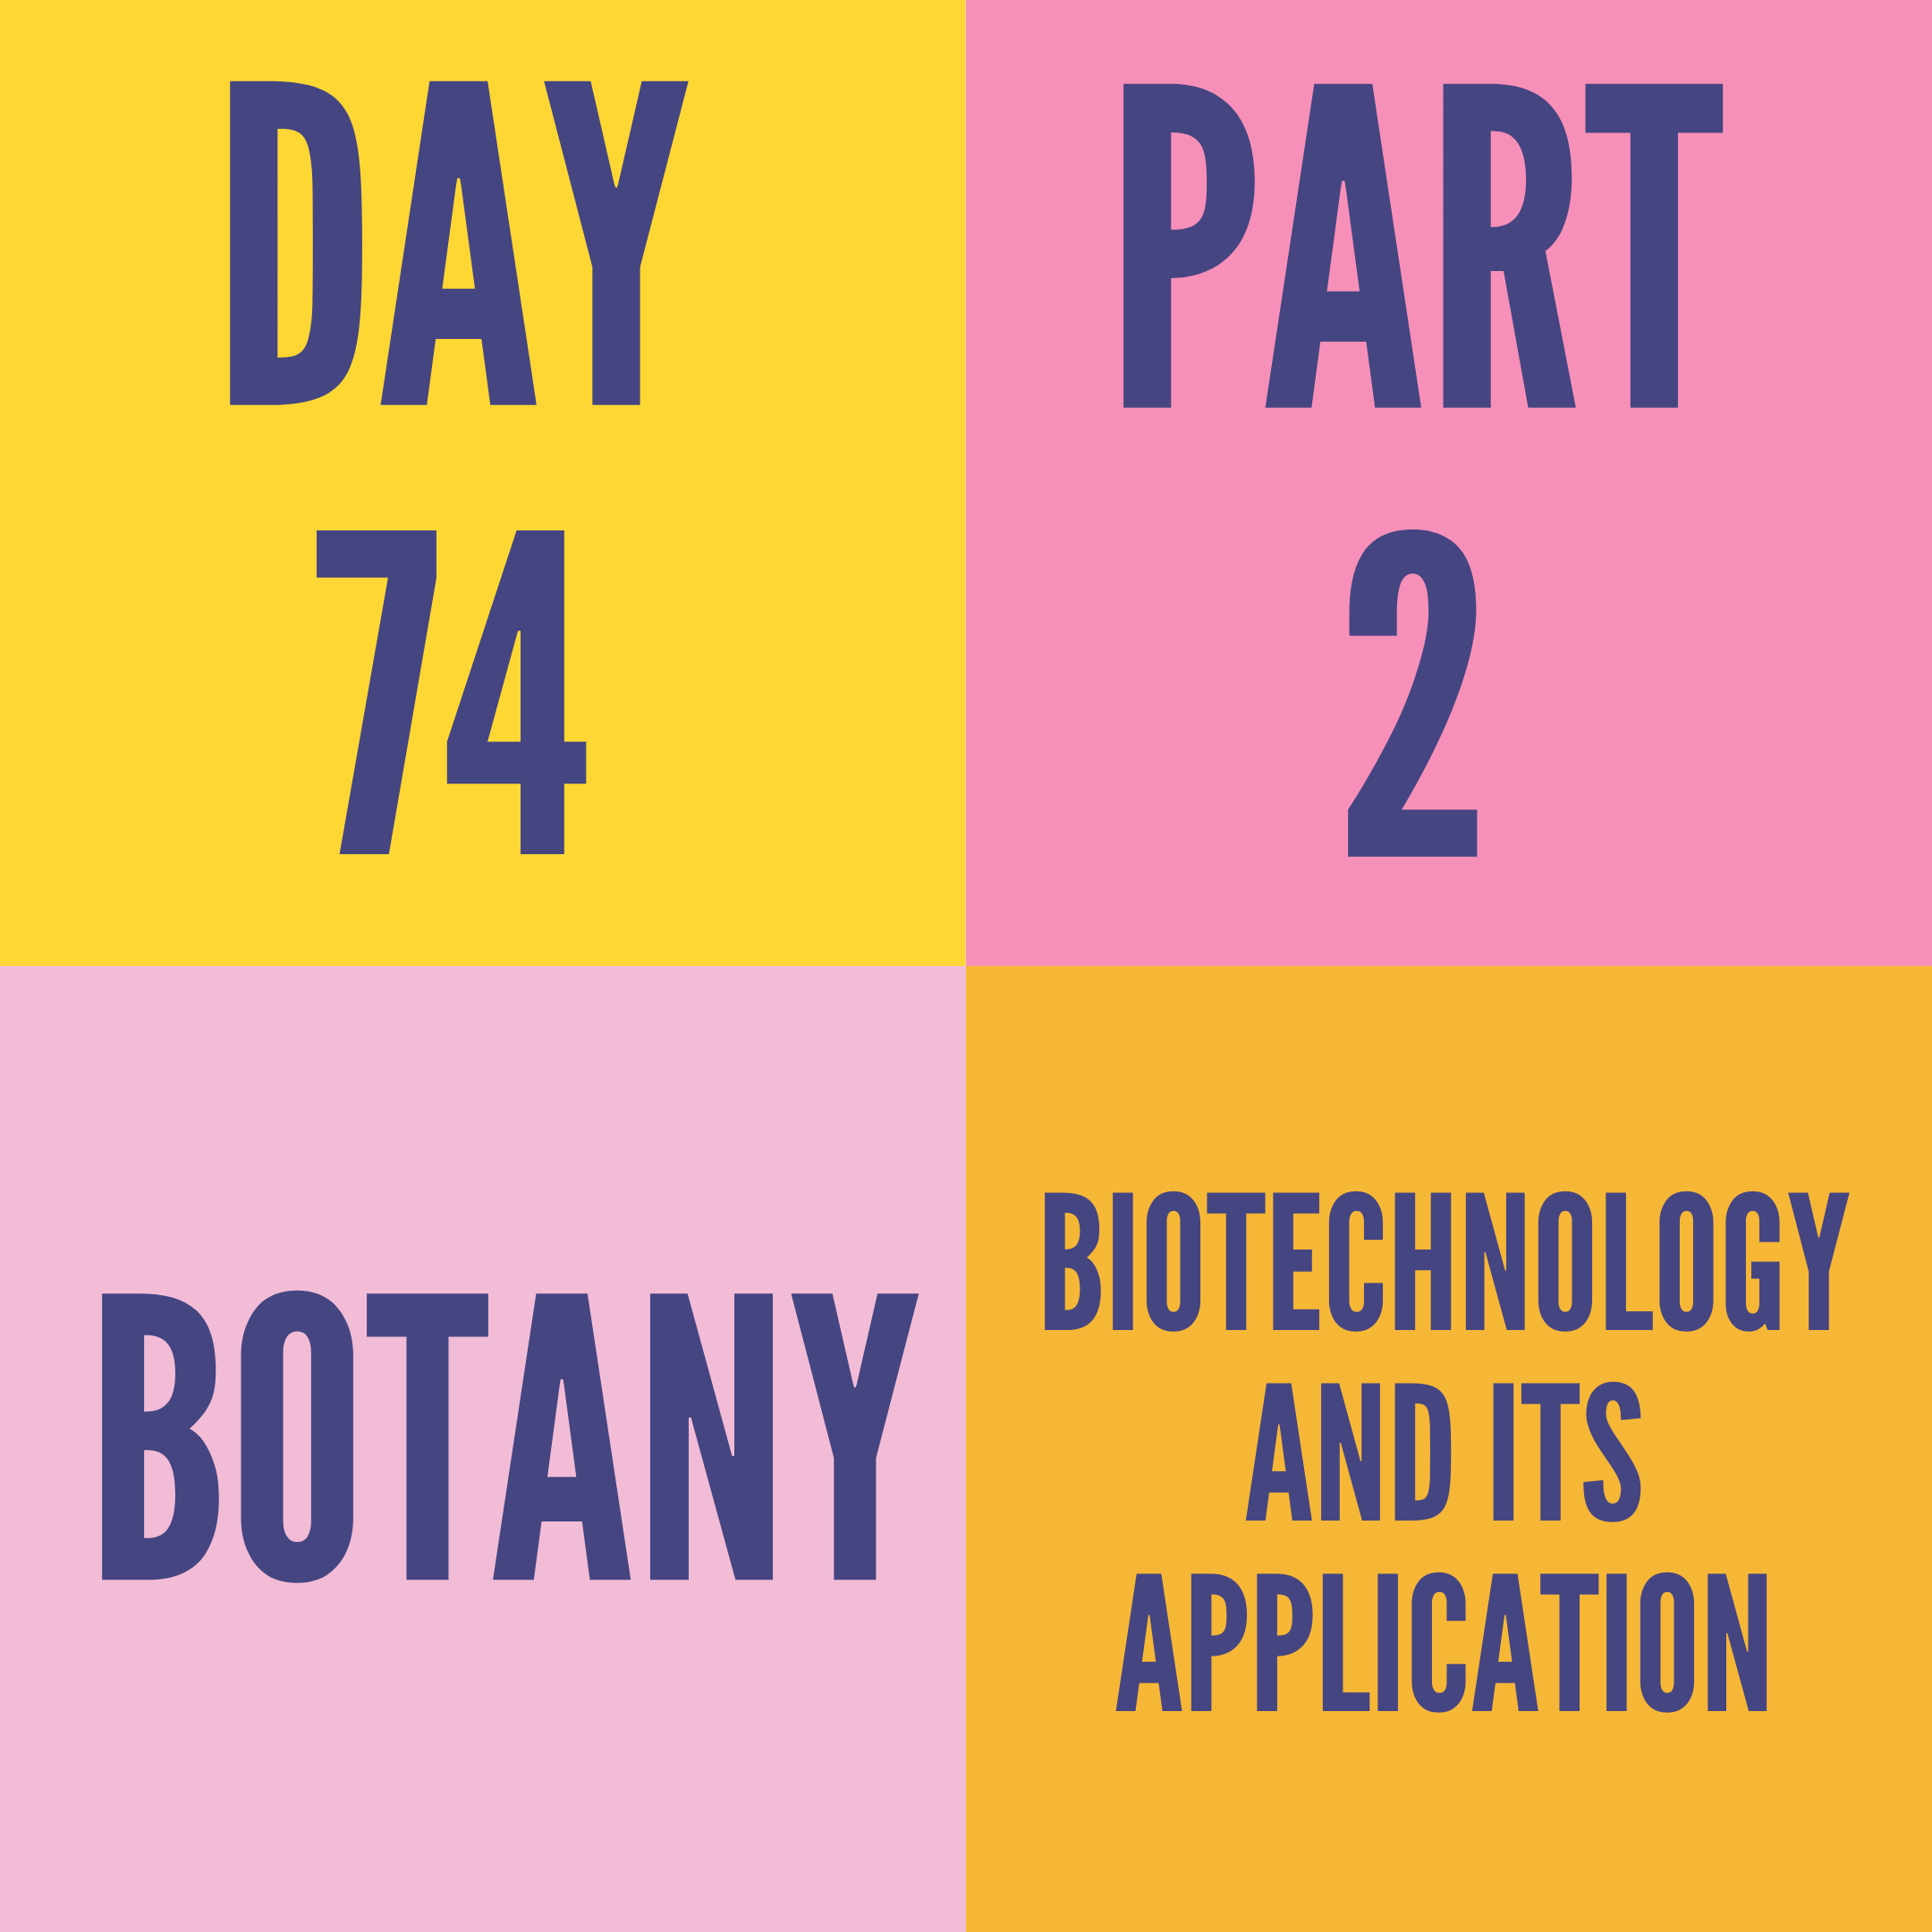 DAY-74 PART-2 BIOTECHNOLOGY AND ITS APPLICATION